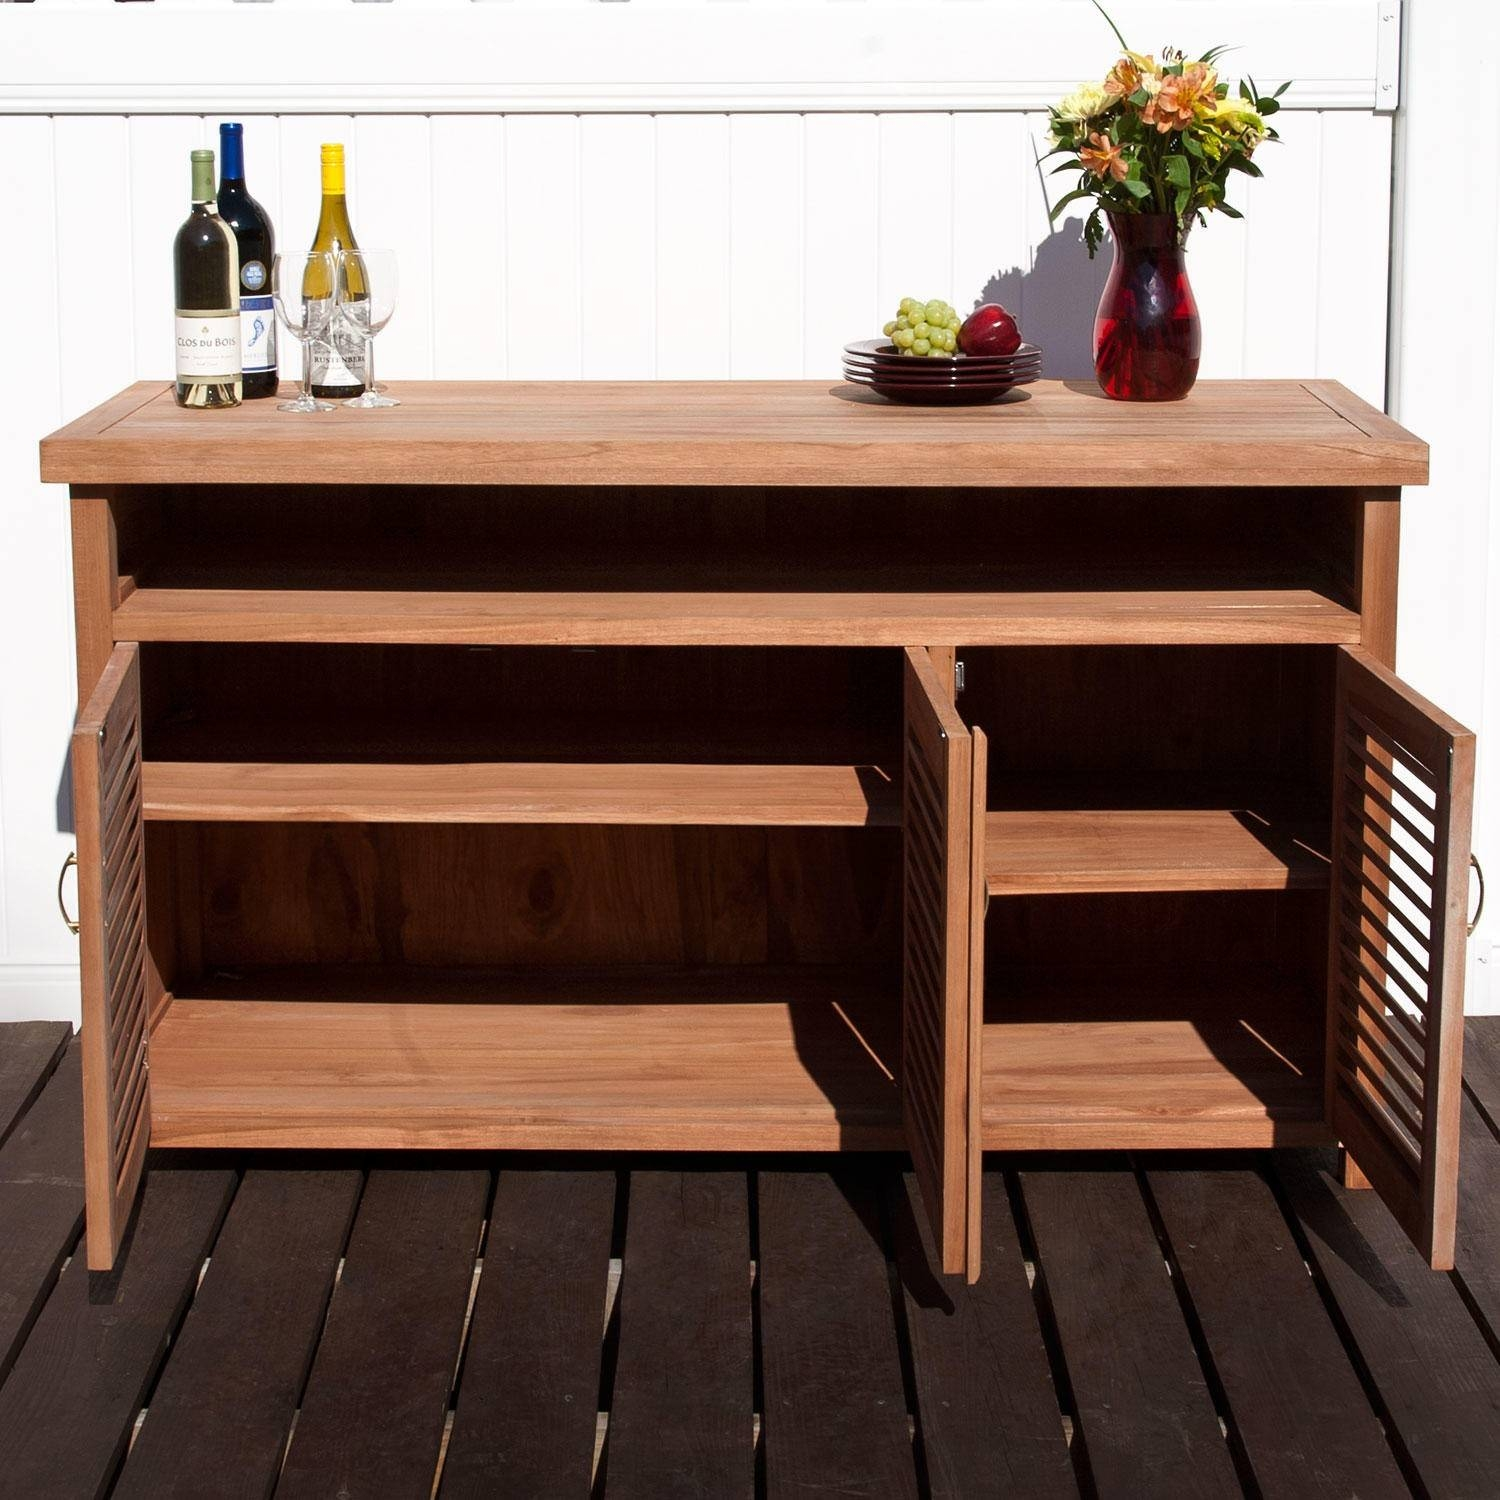 Teak Outdoor Buffet With Storage – Outdoor In Newest Outdoor Sideboard Cabinets (#13 of 15)